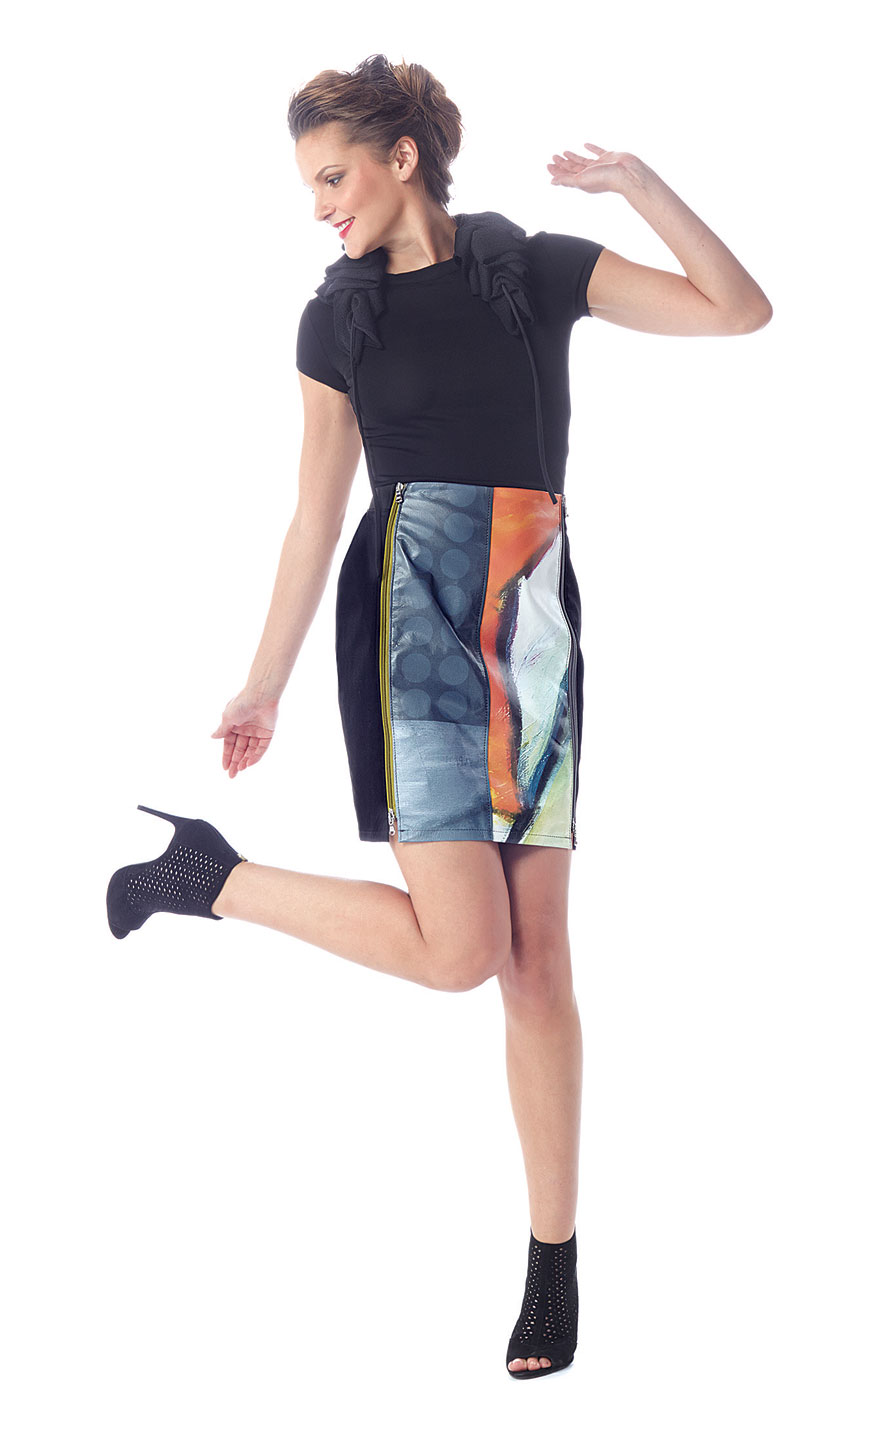 GEER:  DIGITALLY PRINTED LEATHER SKIRT with removable panel, 2016.